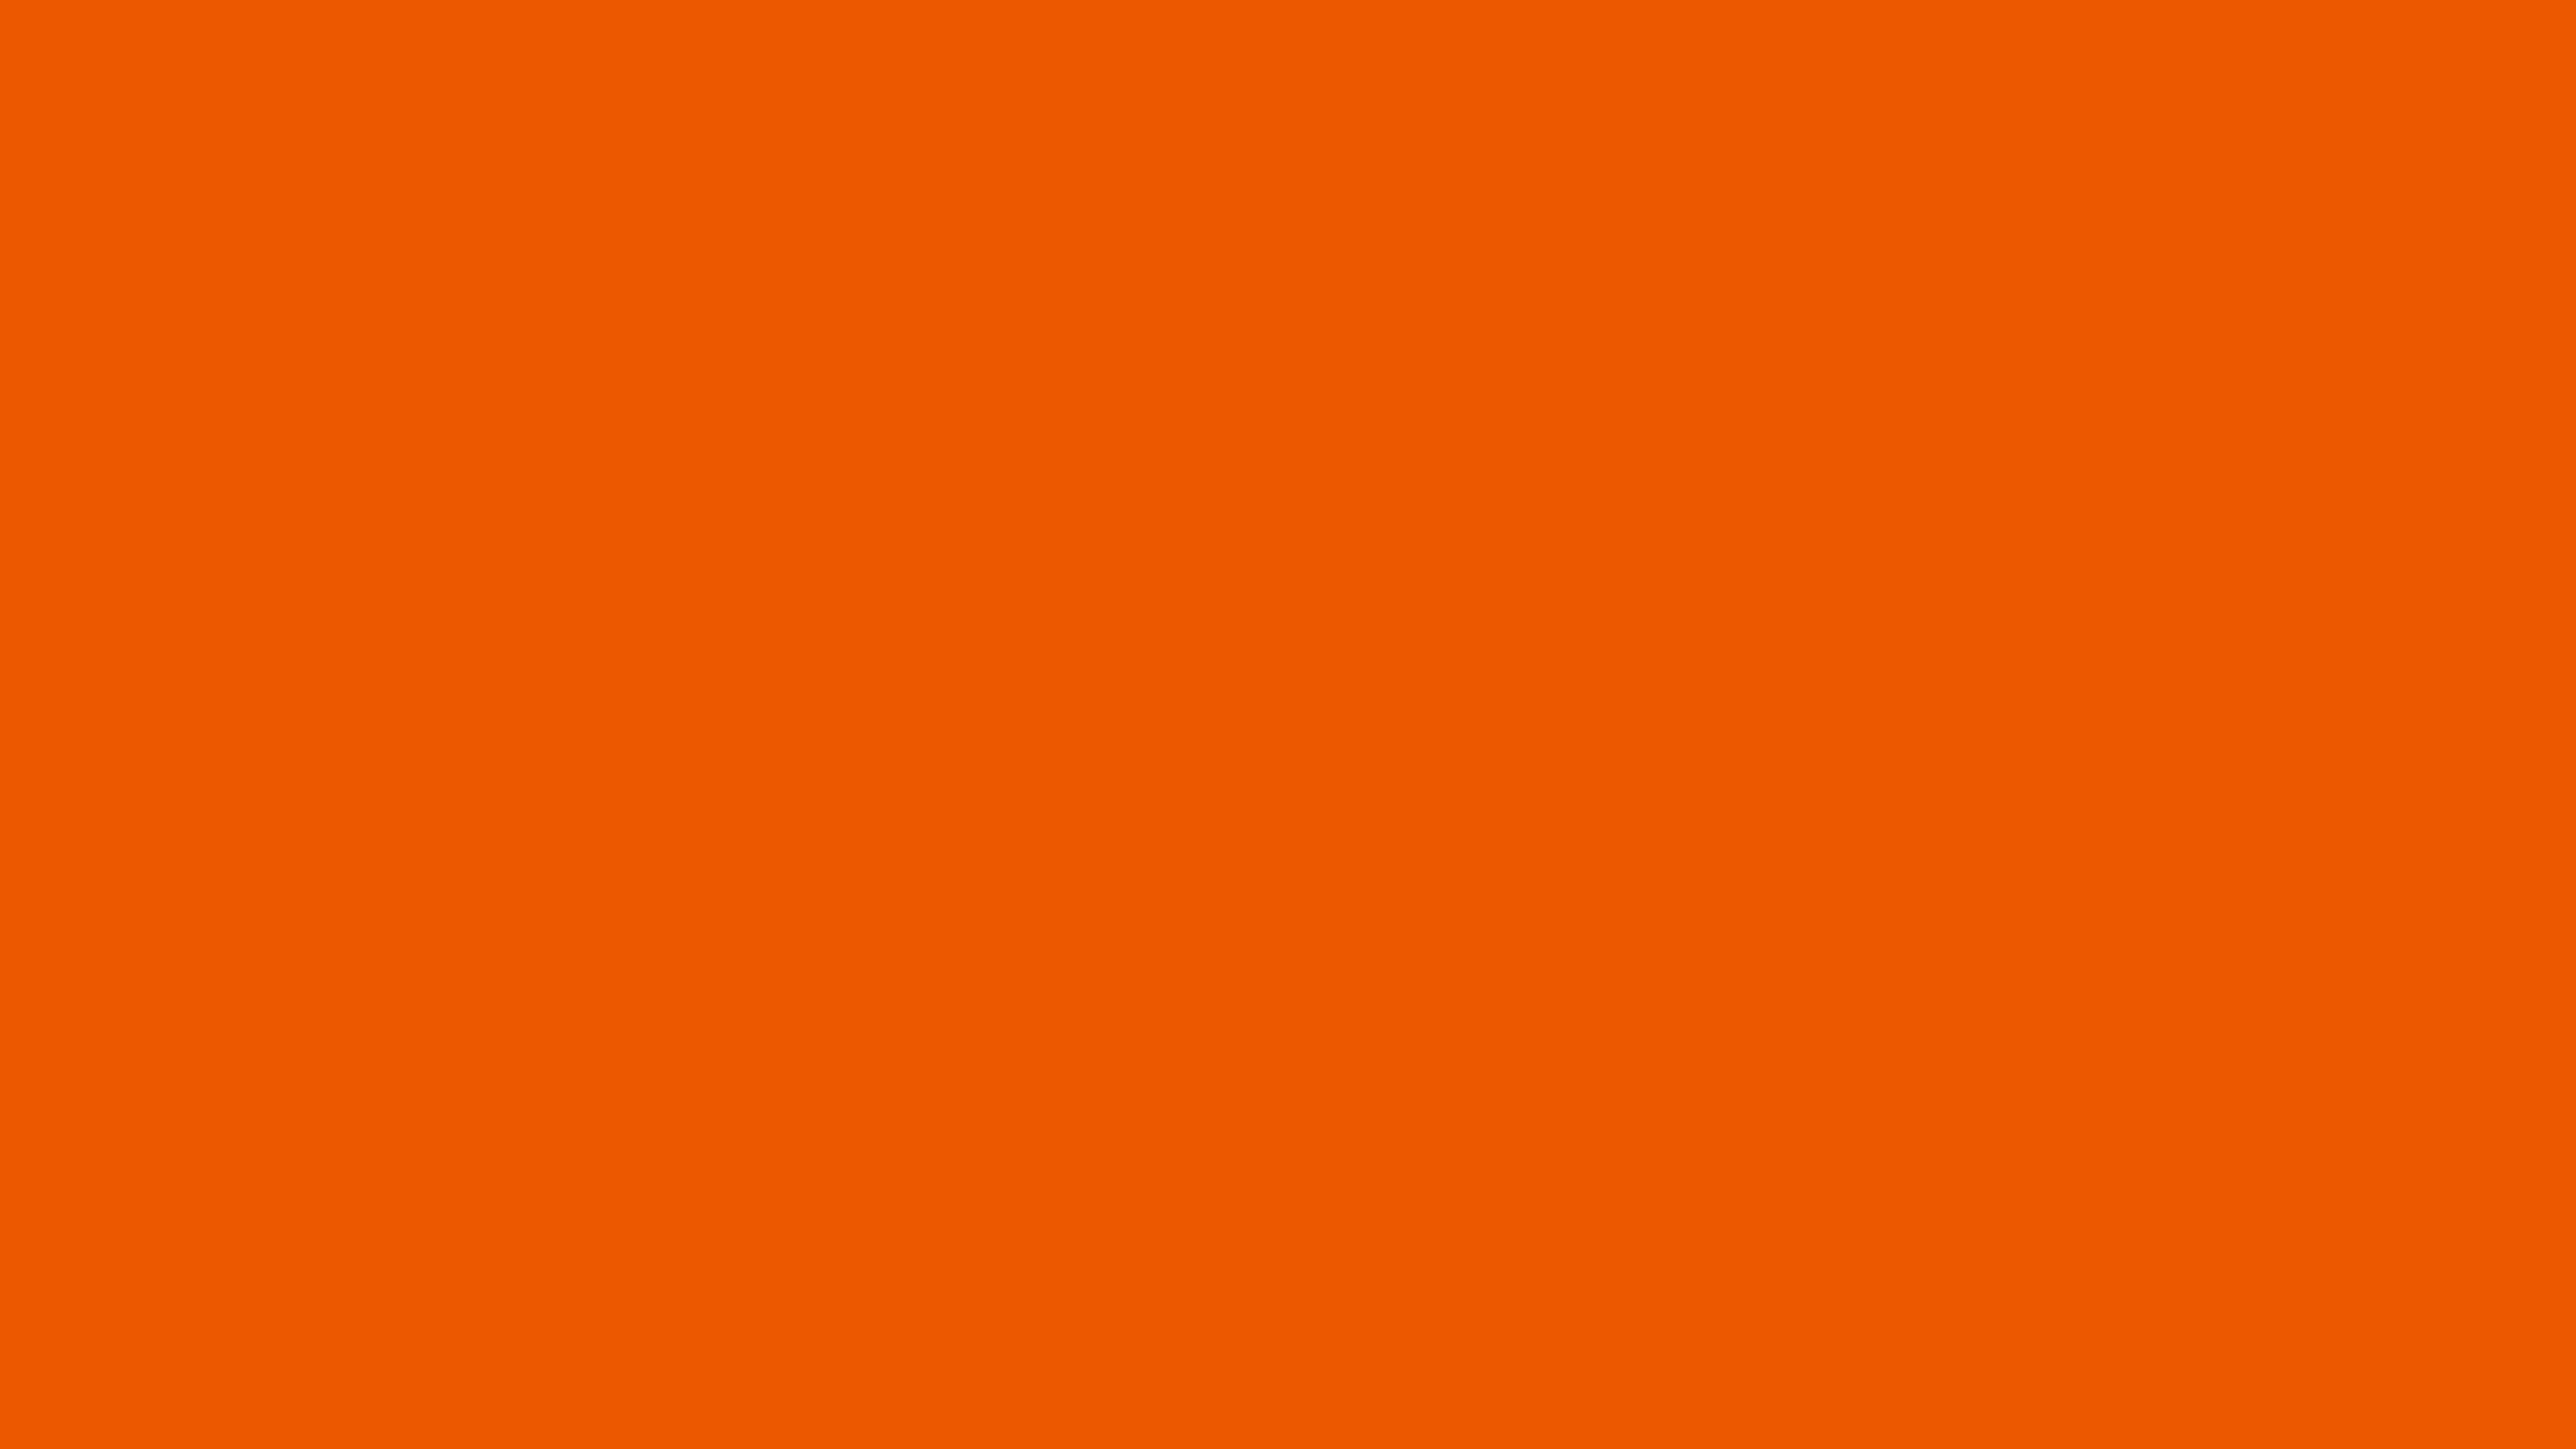 4096x2304 Persimmon Solid Color Background